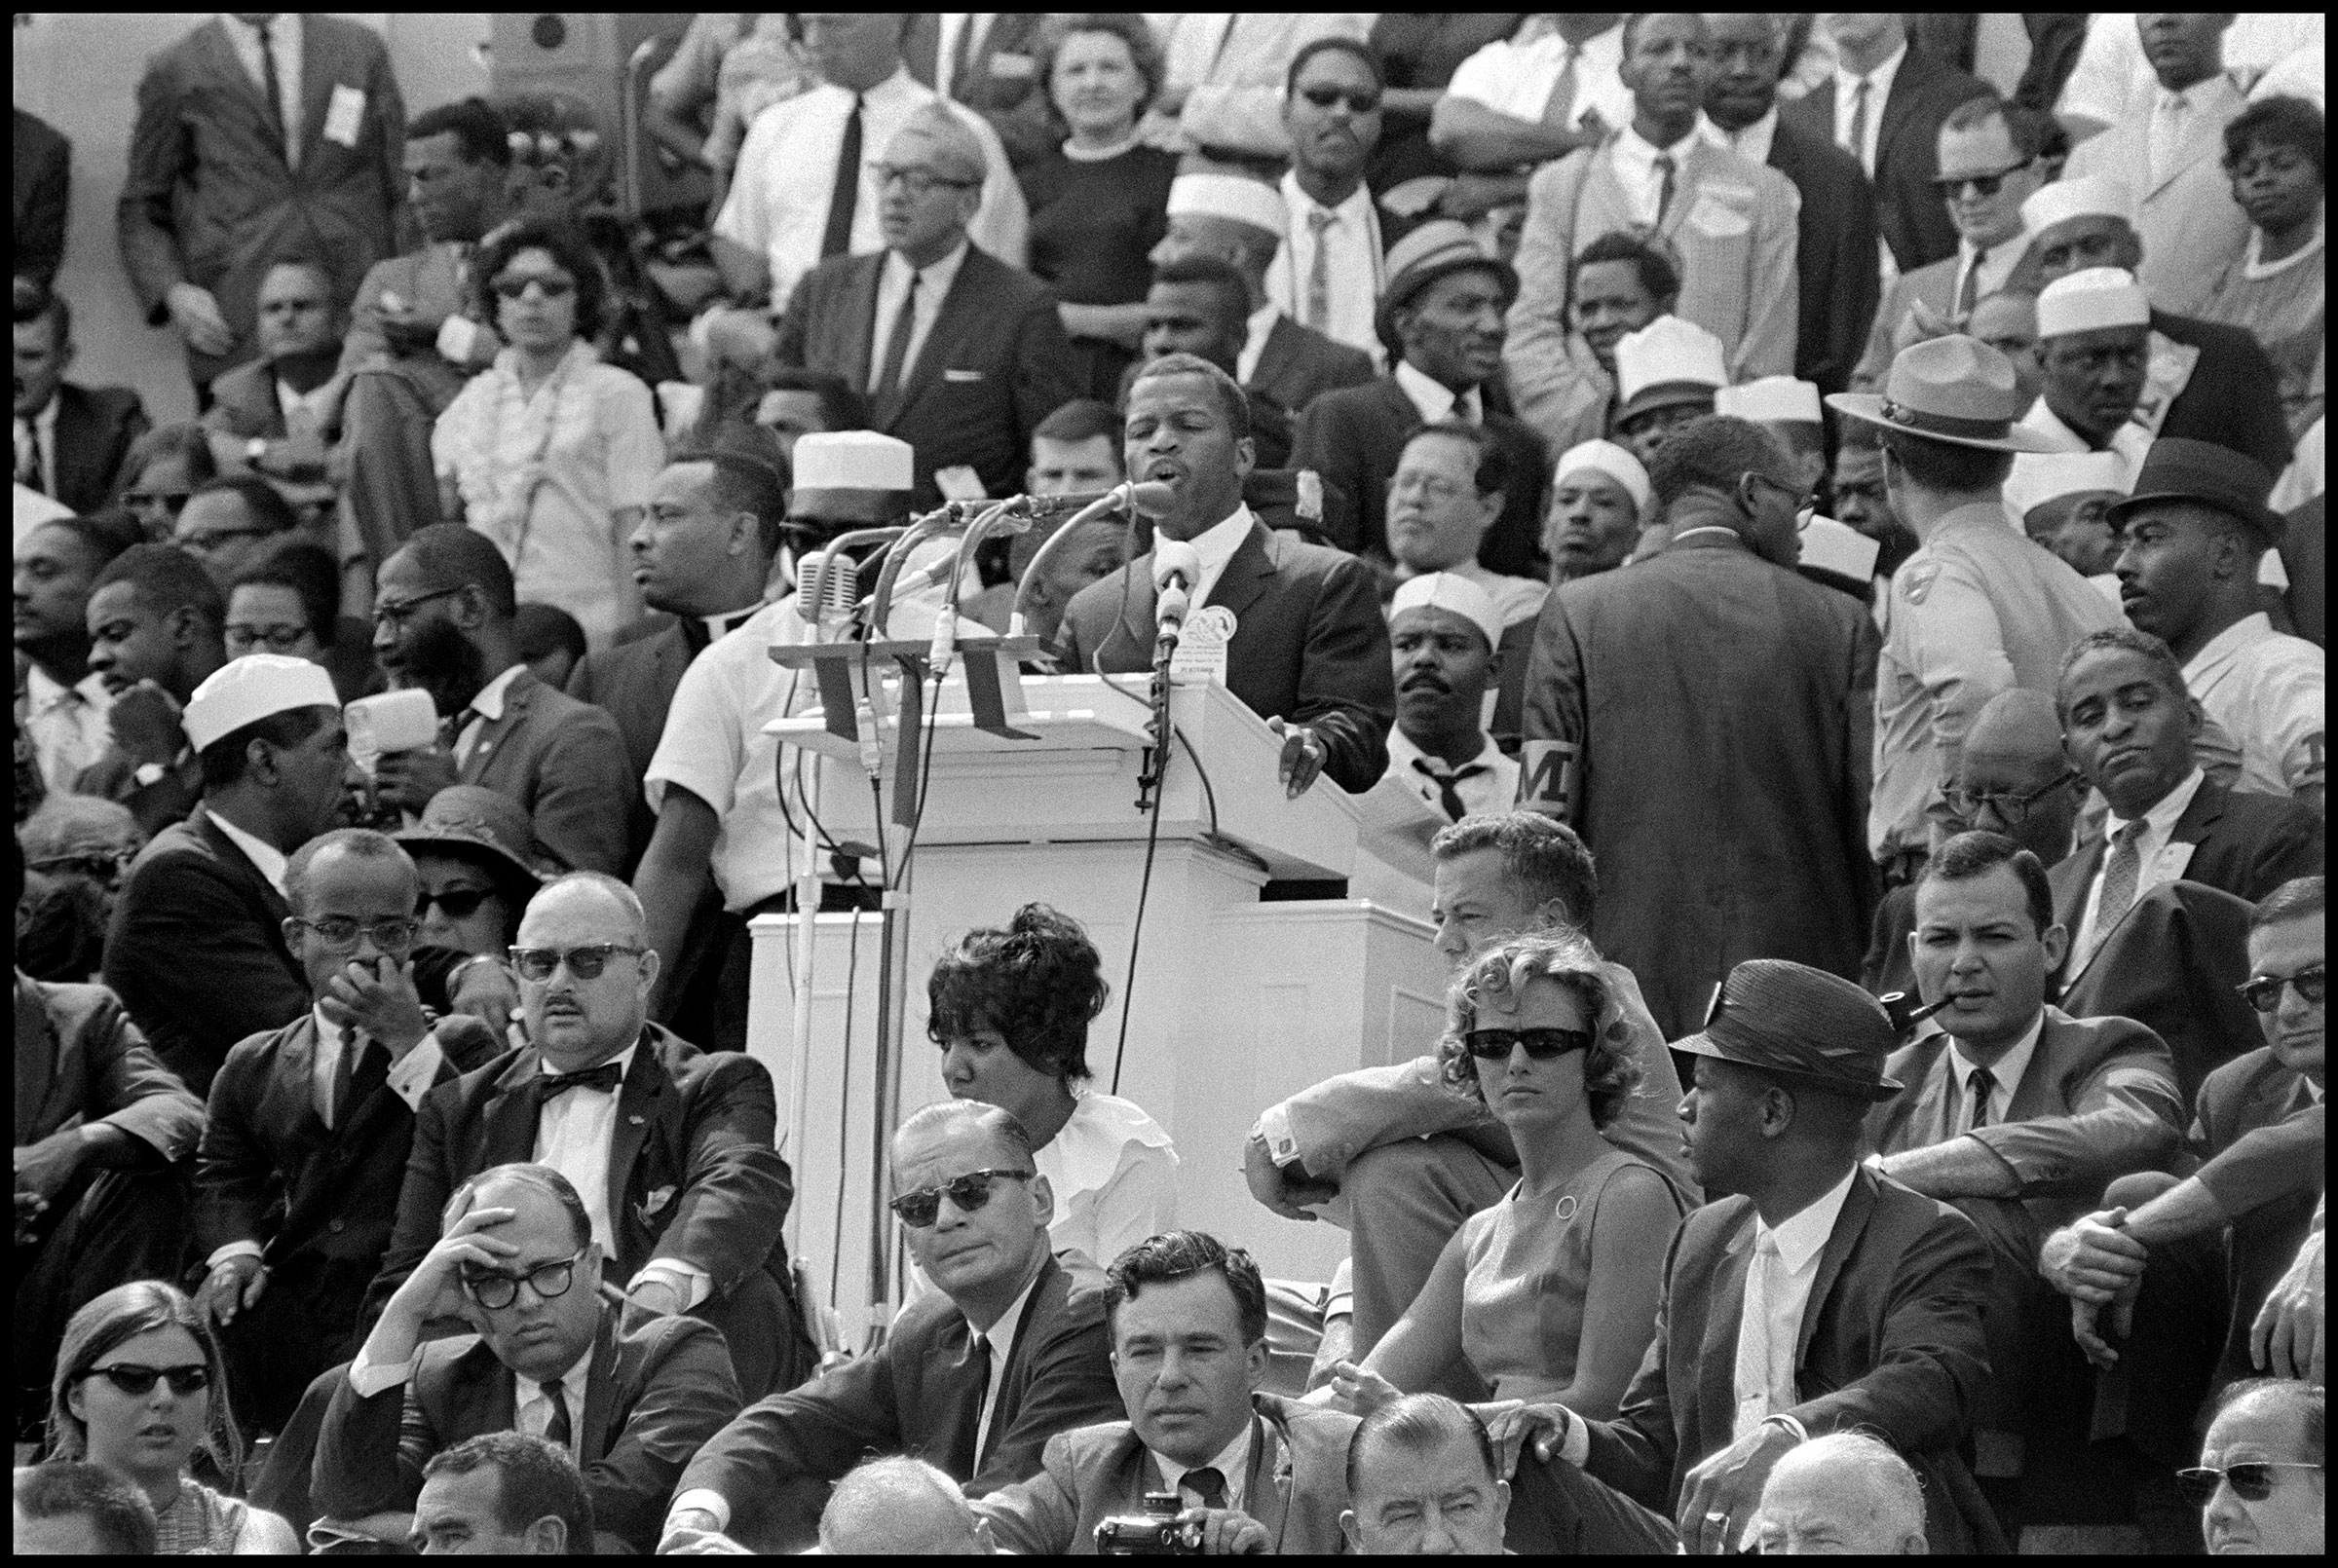 SNCC Chairman John Lewis speaks from the steps of the Lincoln Memorial in Washington, D.C., 1963